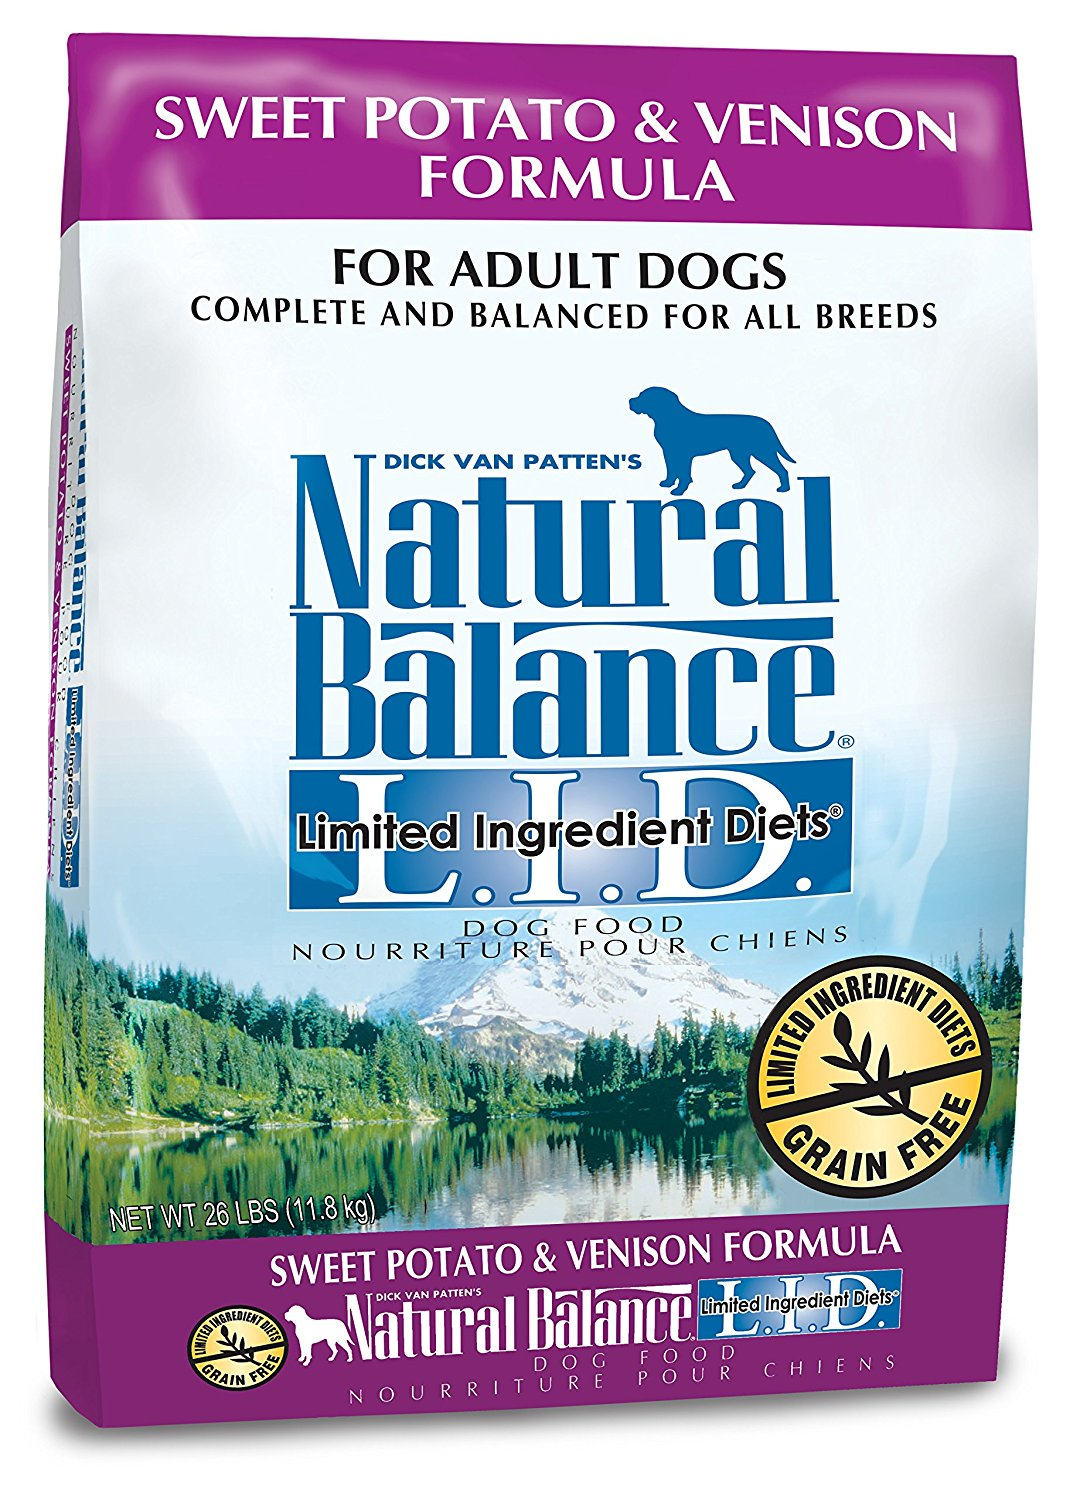 Natural Balance Dry Dog Food – Sweet Potato & Venison Formula